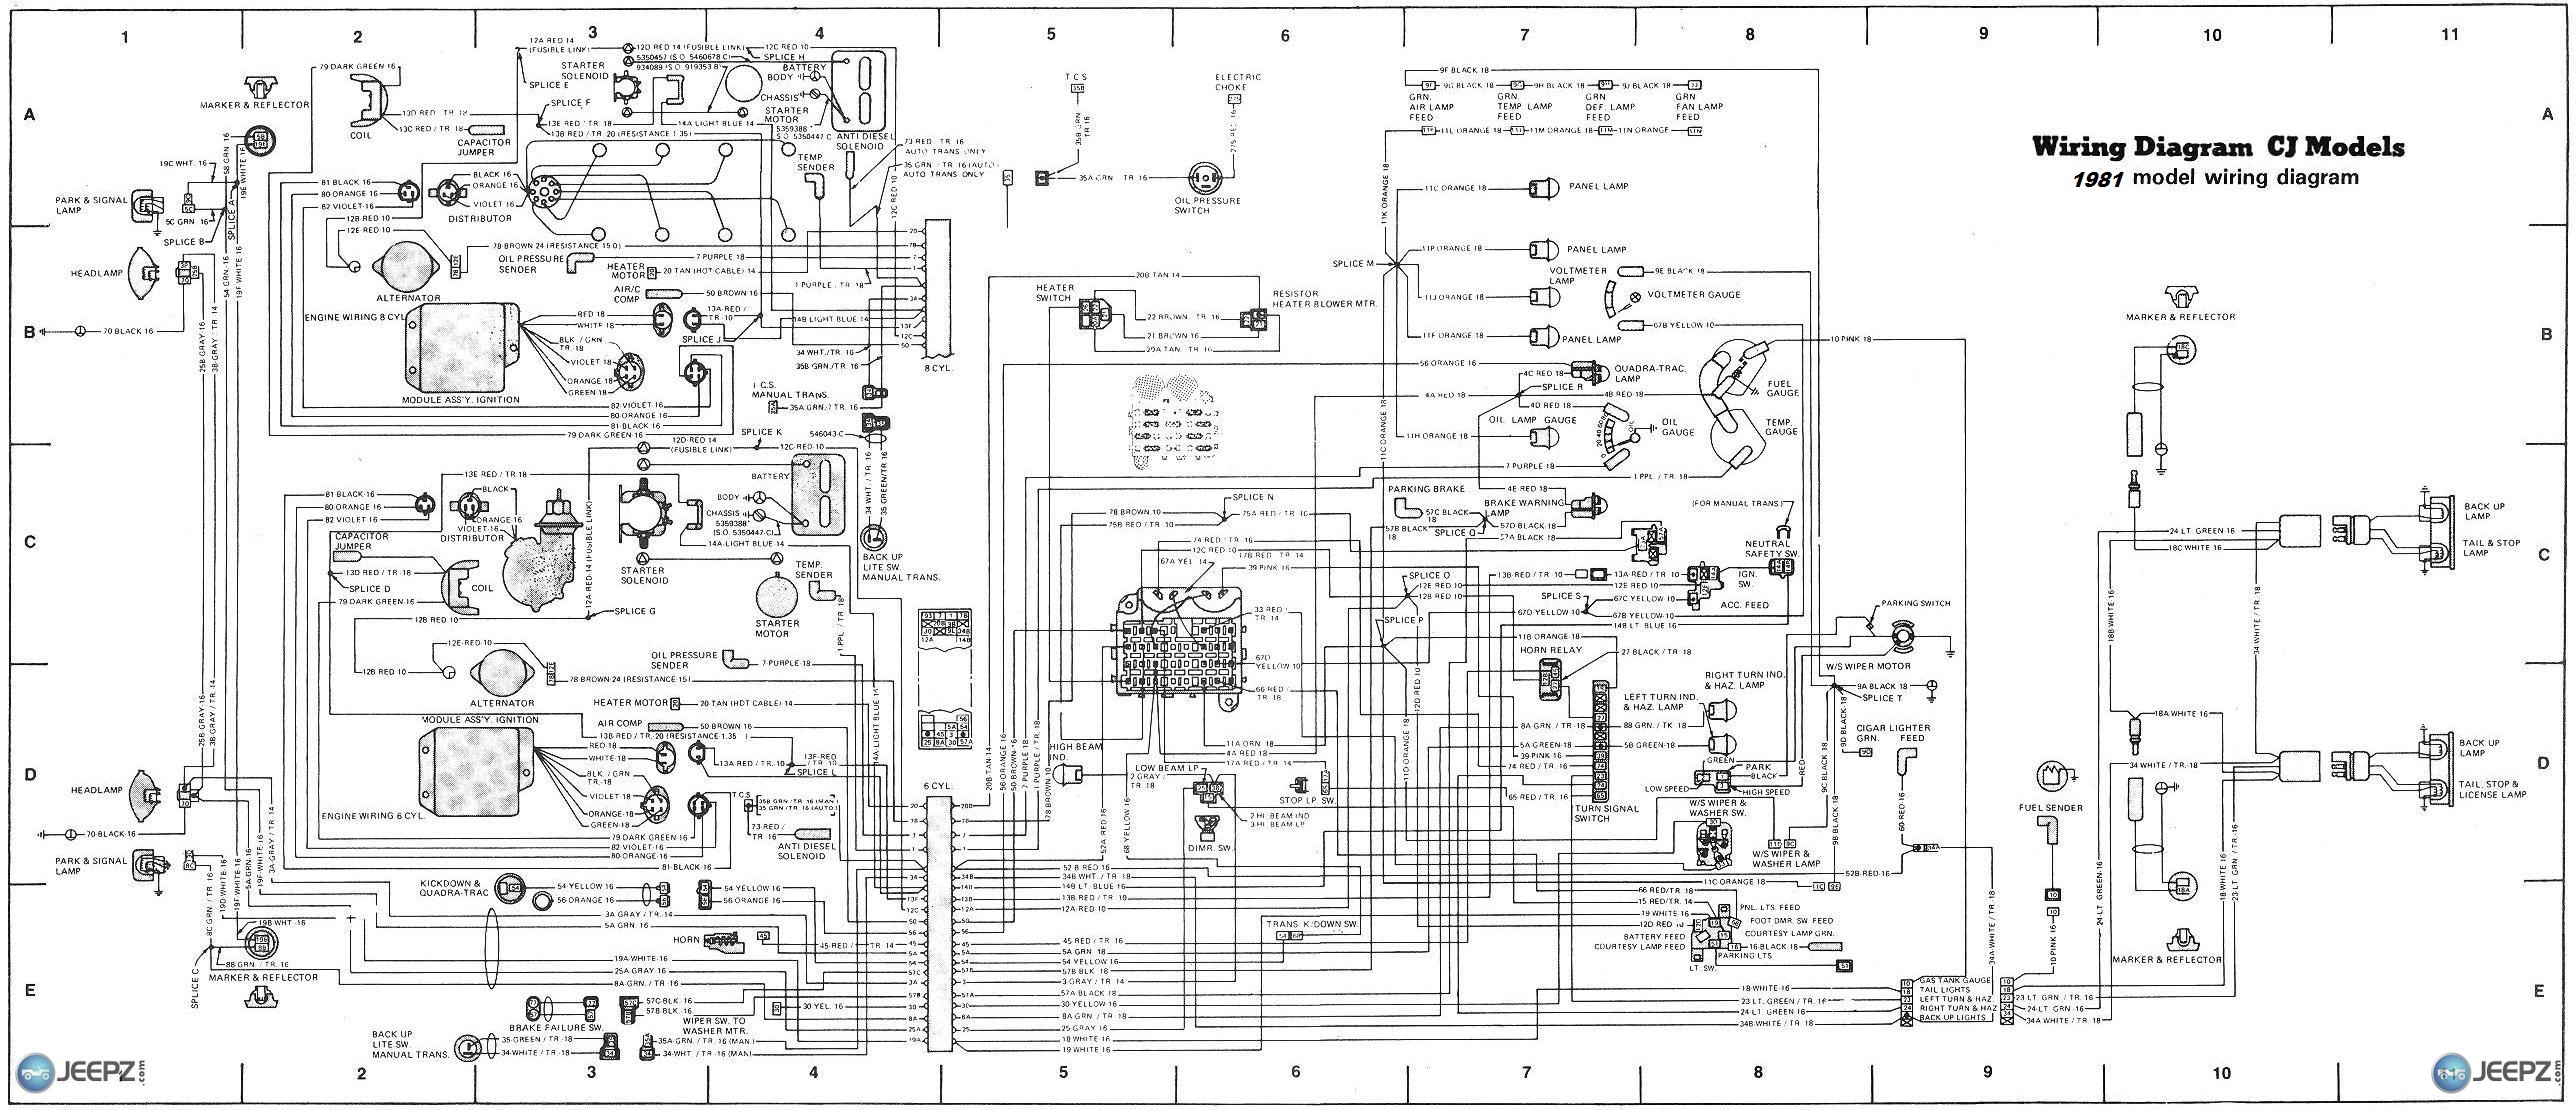 [DHAV_9290]  BH_2715] 1984 Jeep Cj7 Ignition Wiring Diagram Further Msd Power Grid Wiring  Free Diagram | Key Switch Wiring Diagram For 84 Jeep |  | Inrebe Vulg Sarc Bocep Mohammedshrine Librar Wiring 101